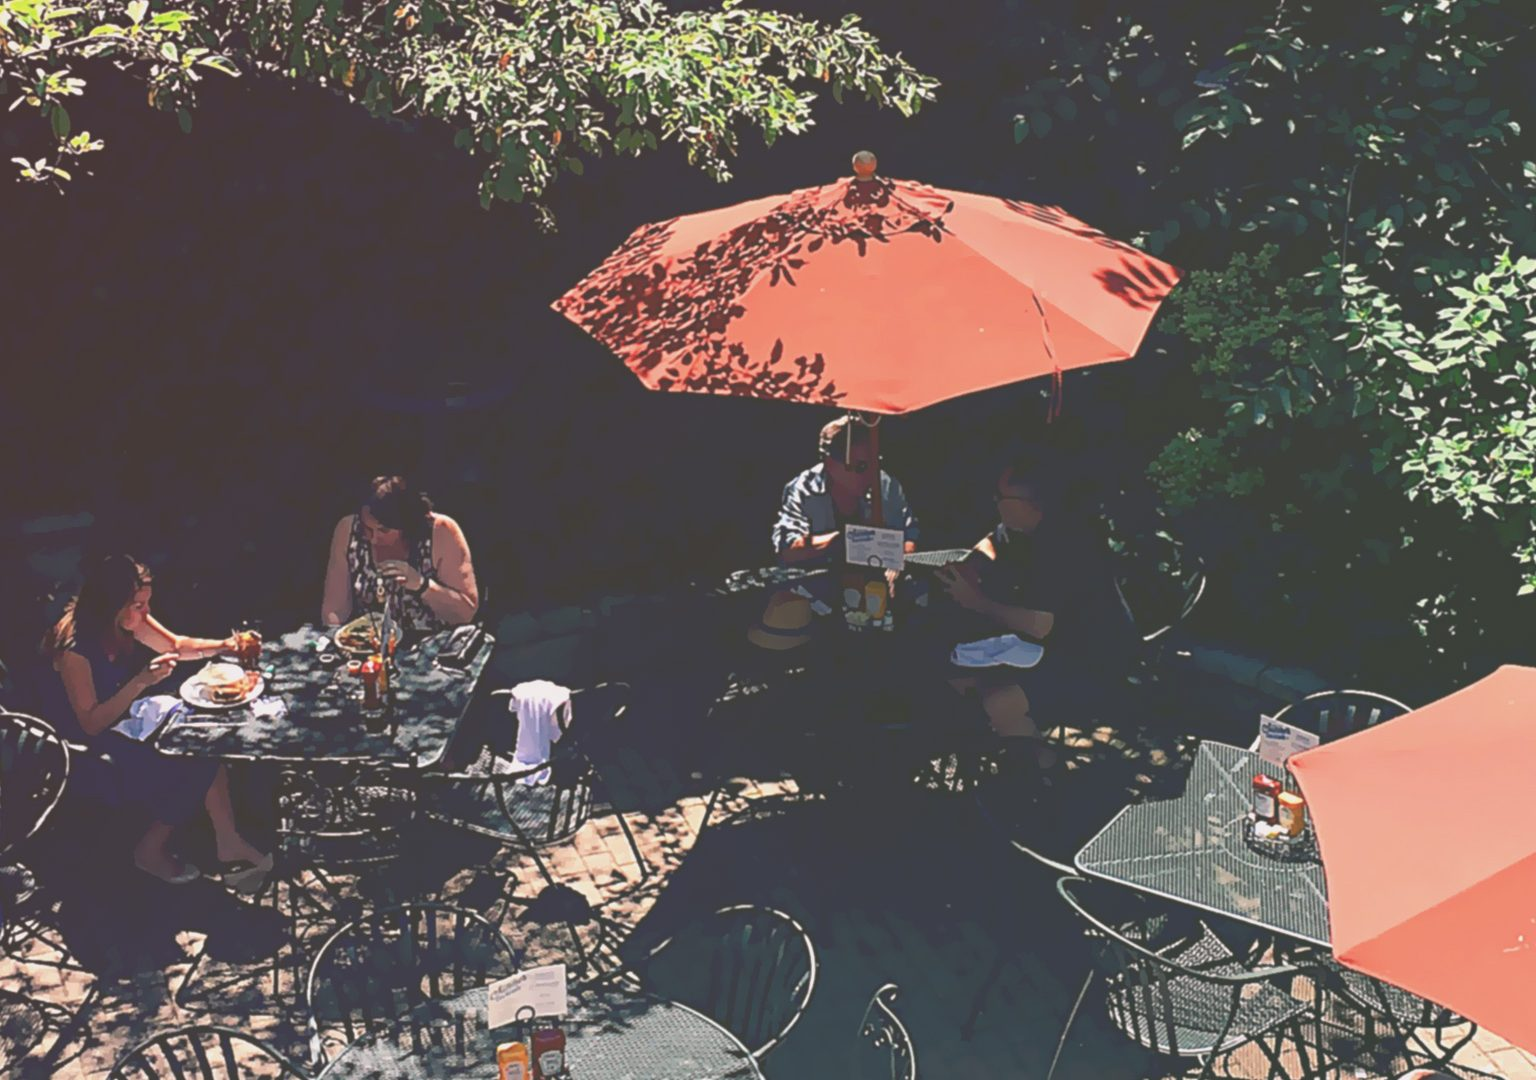 Overhead view of restaurant outdoor patio where several people are sitting at tables